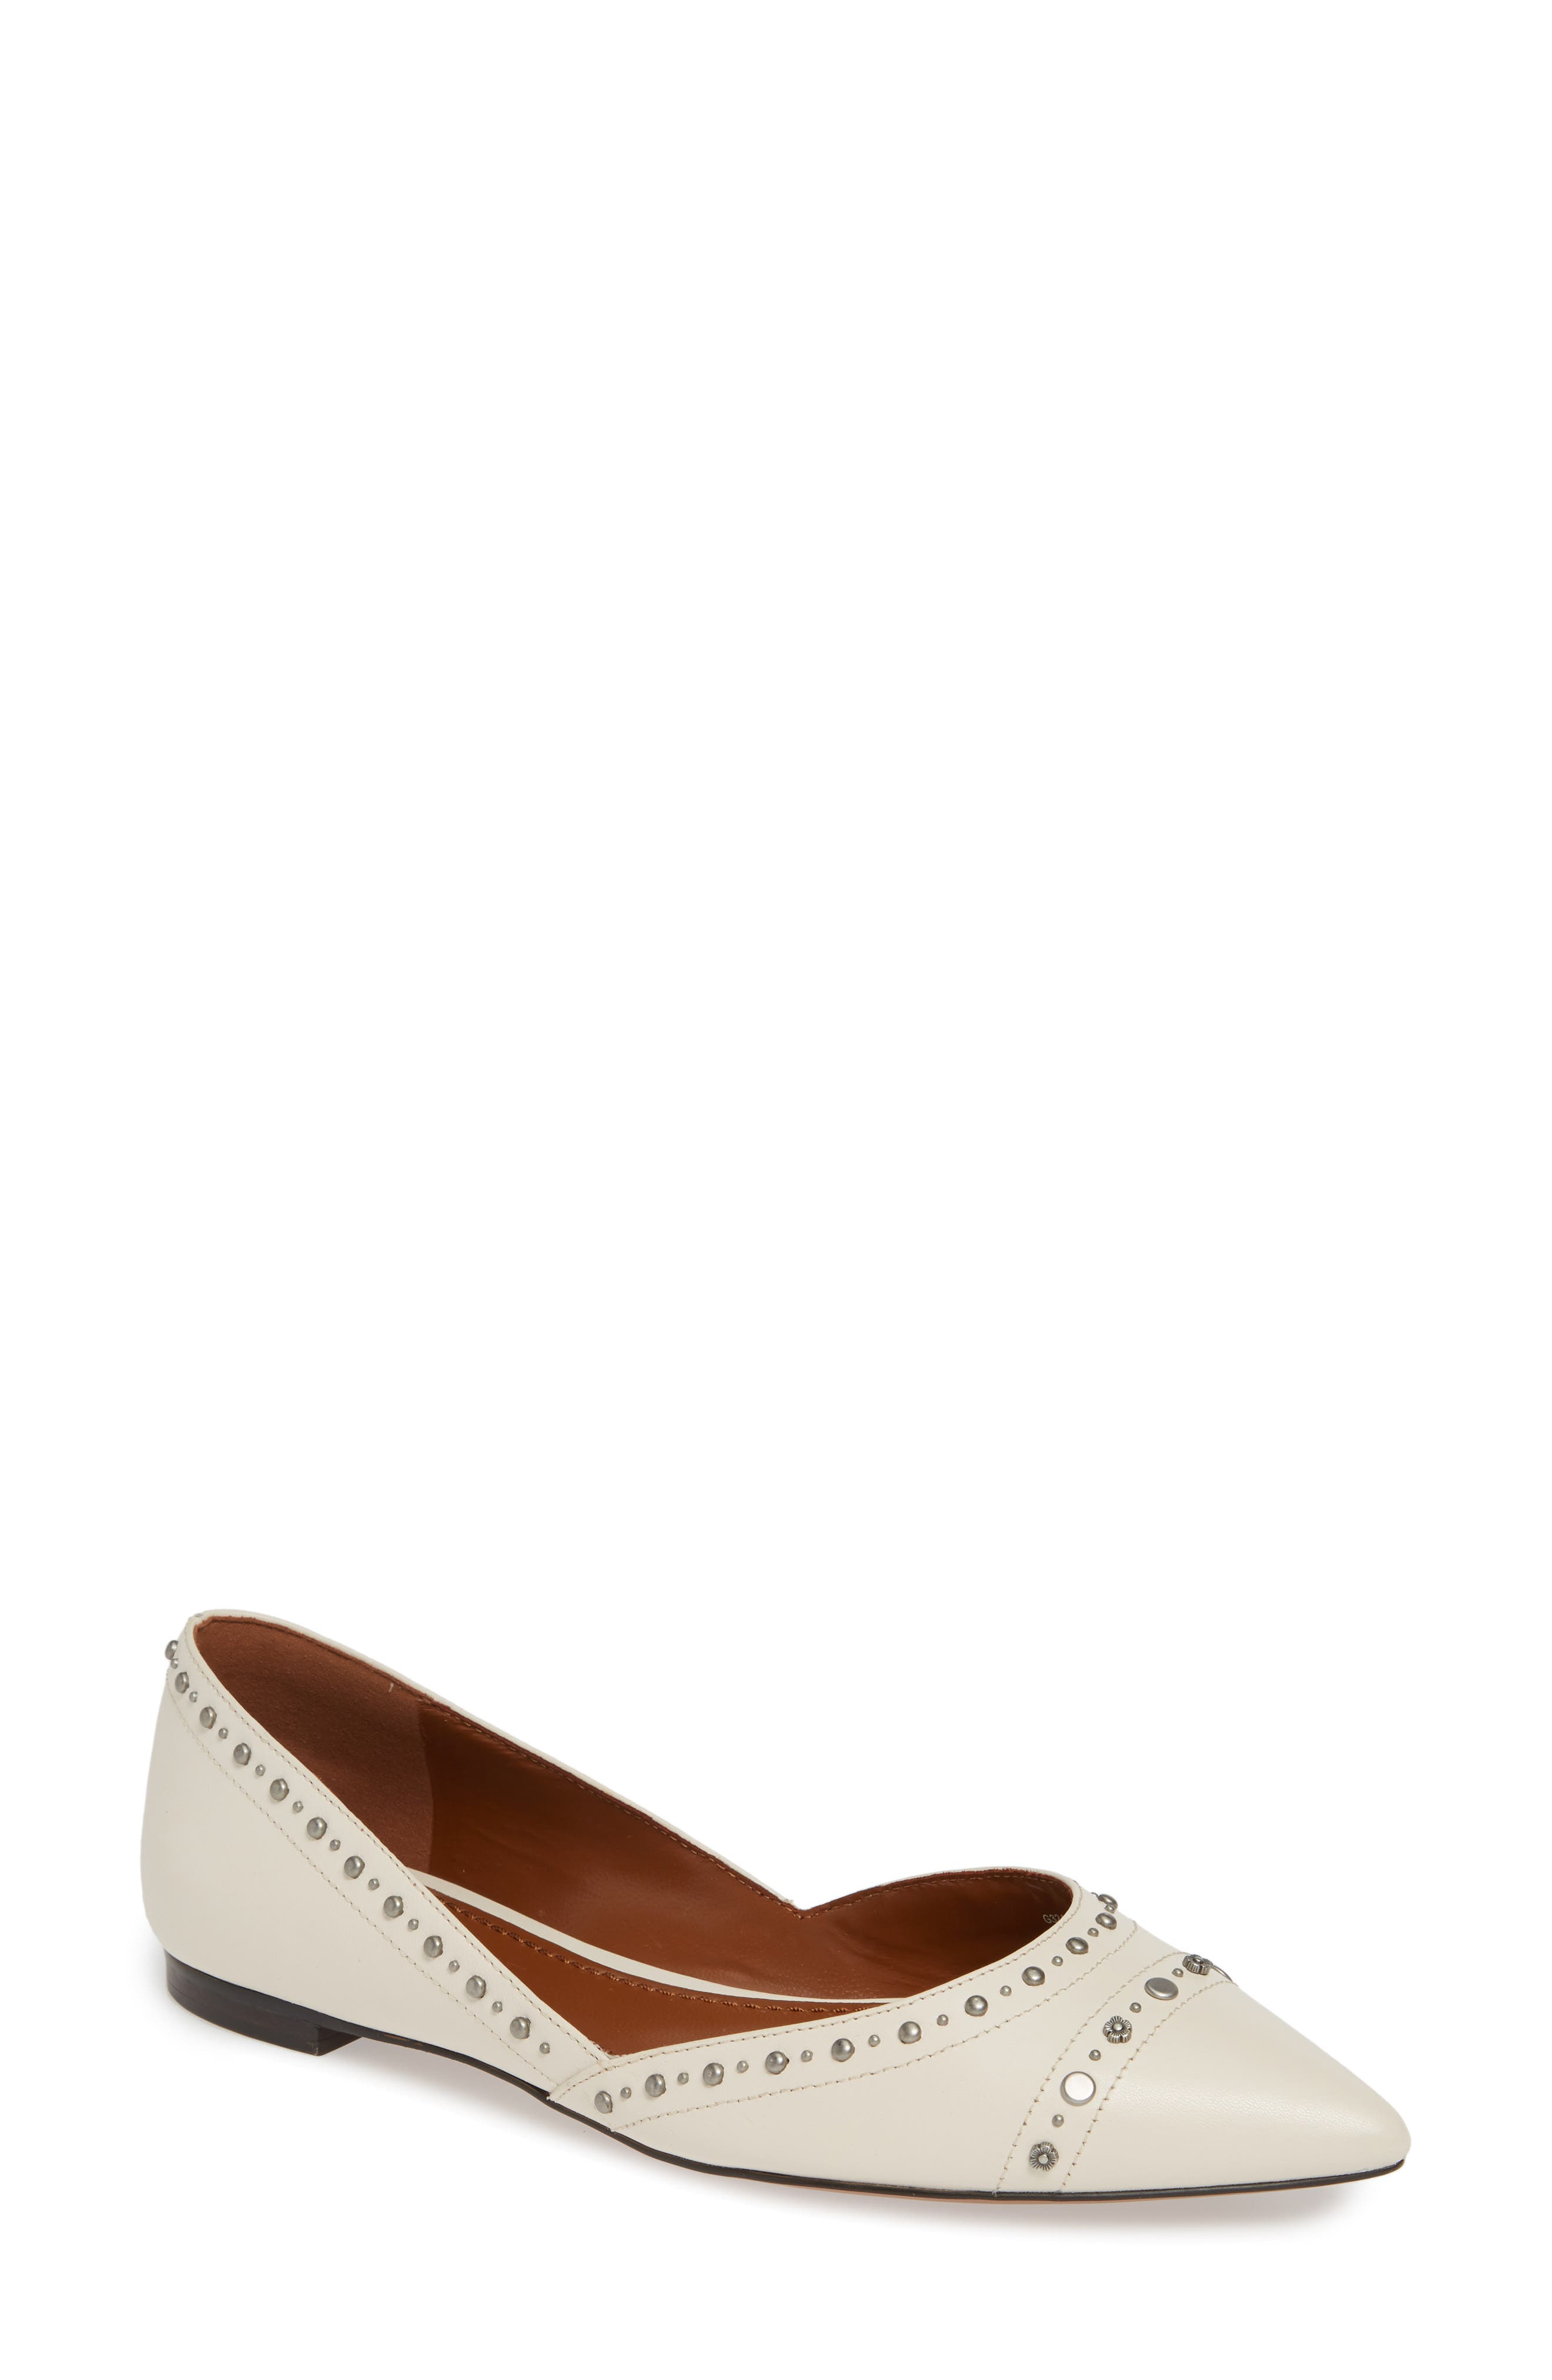 Coach Valintina Pointed Toe Flat